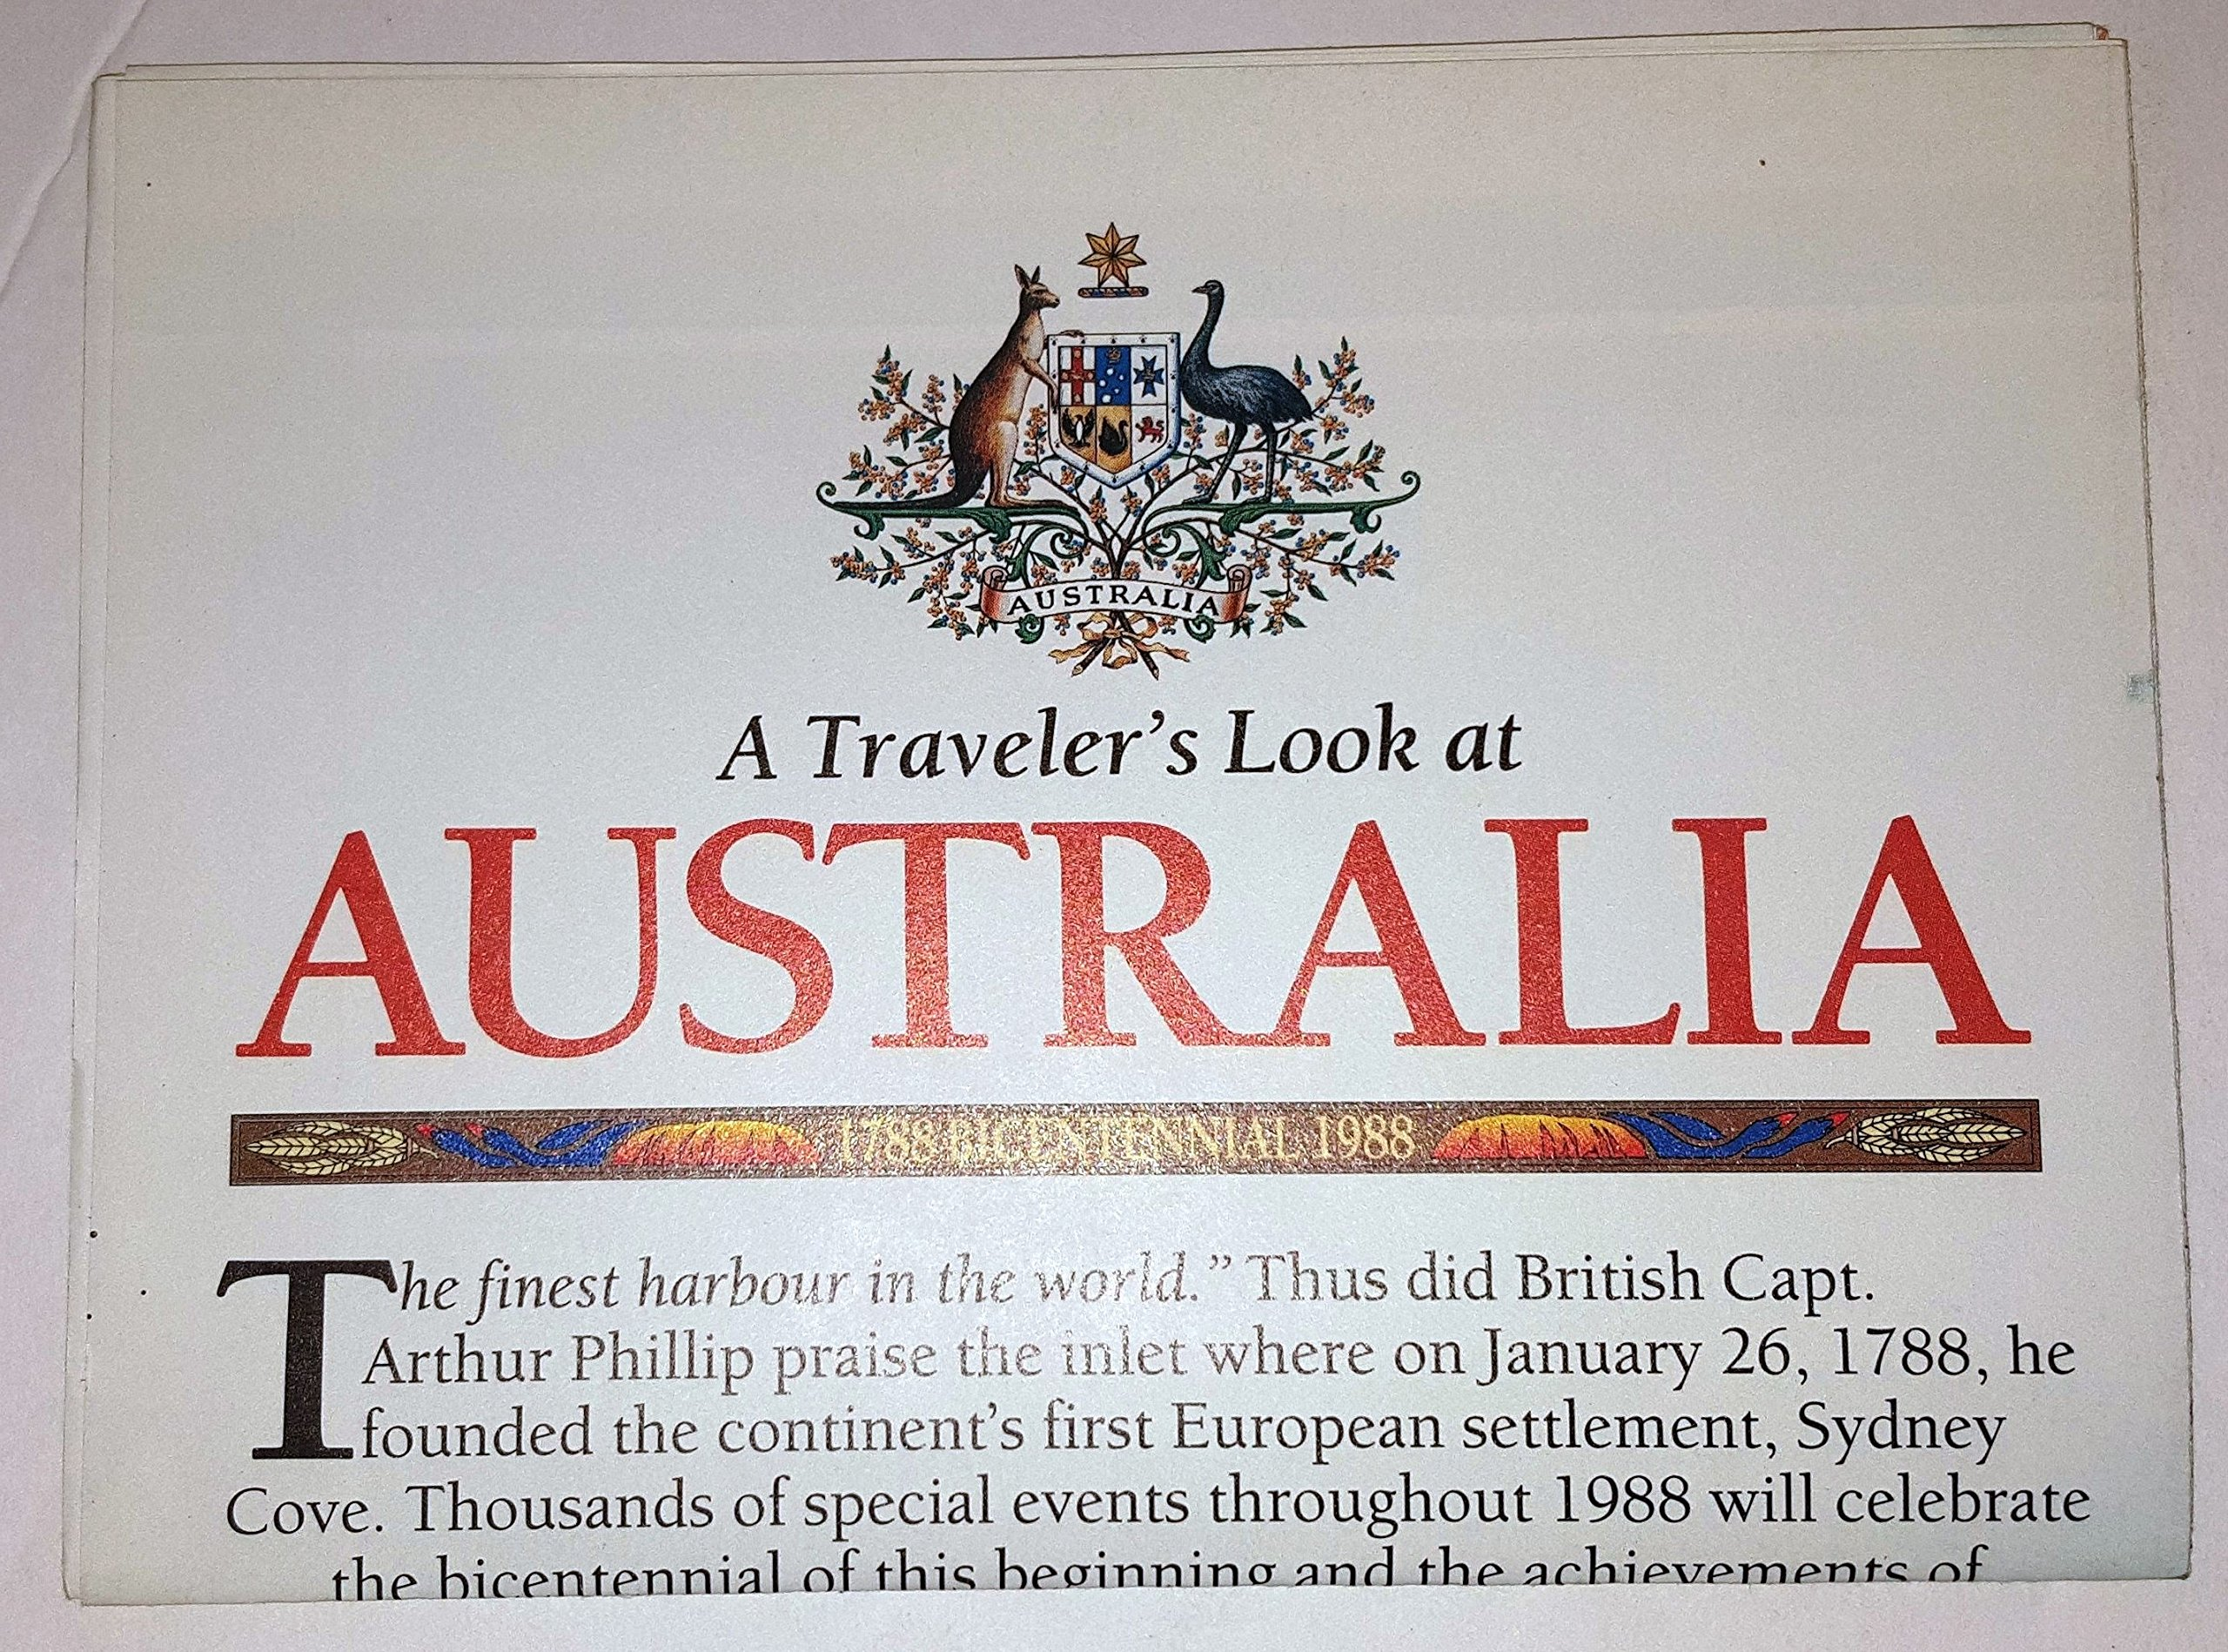 National Geographic Map - A Traveler's Look at Australia